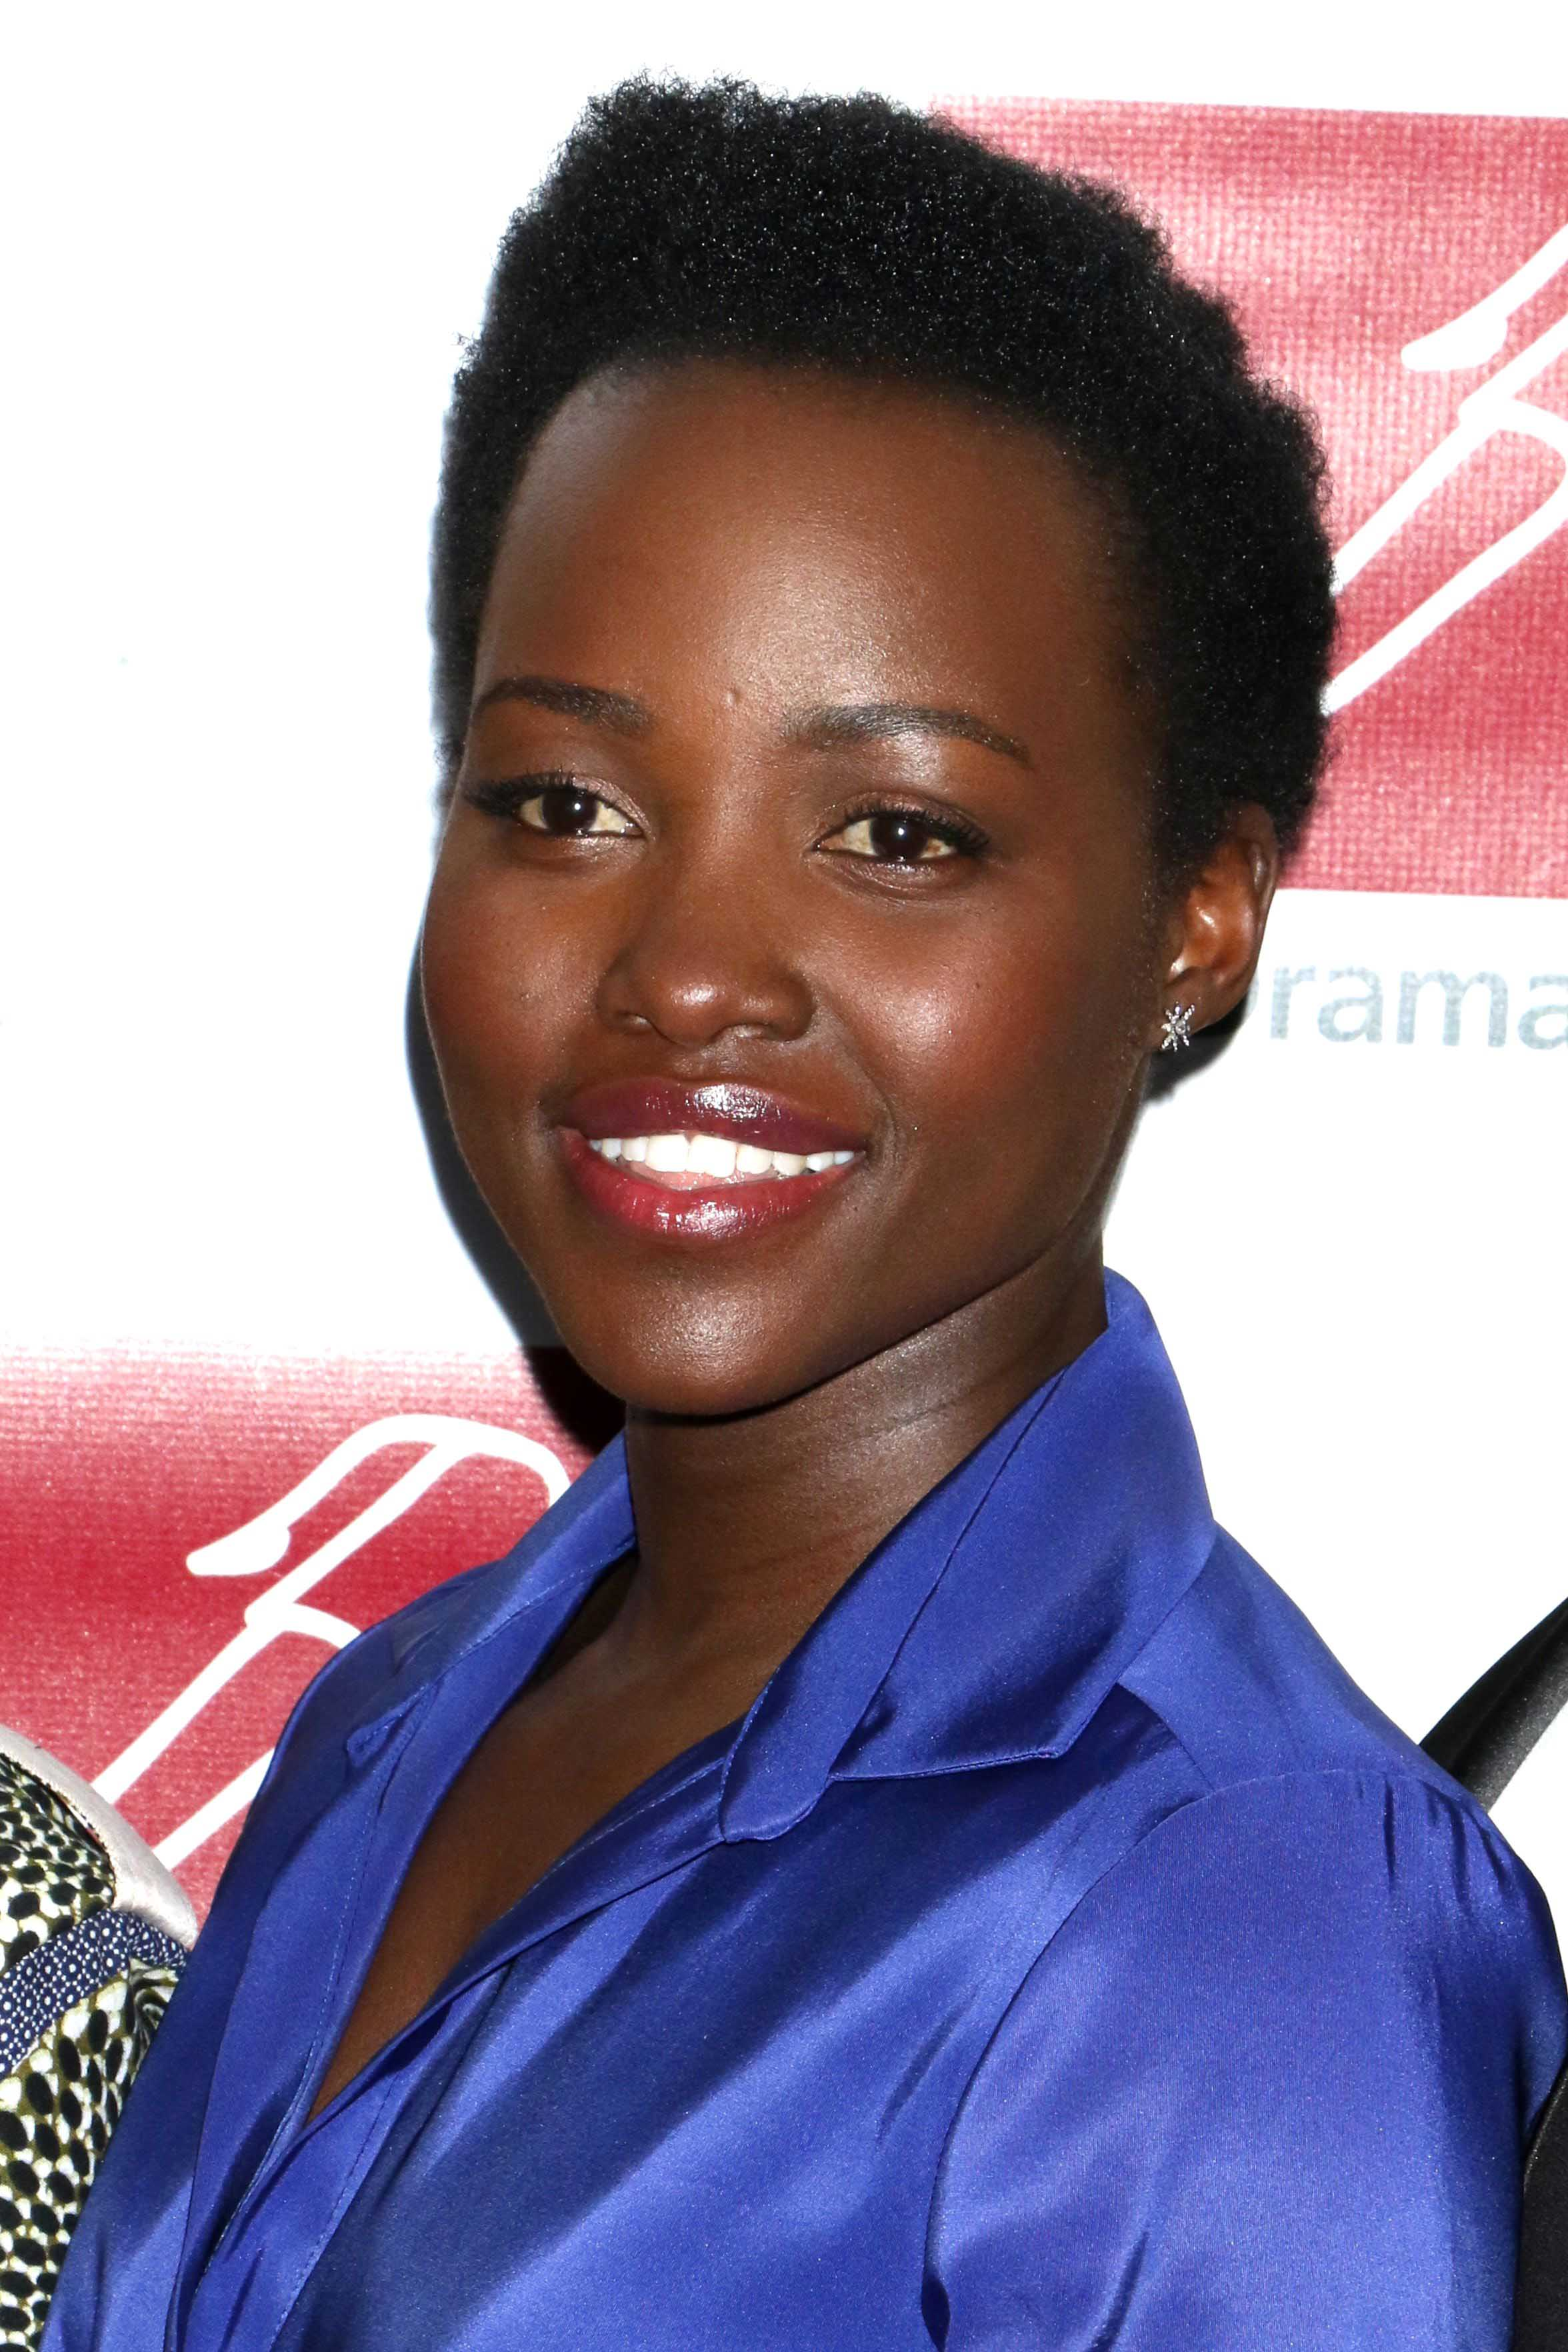 celebrity hair: All Things Hair - IMAGE - 2016 Lupita Nyong'o afro buzz cut